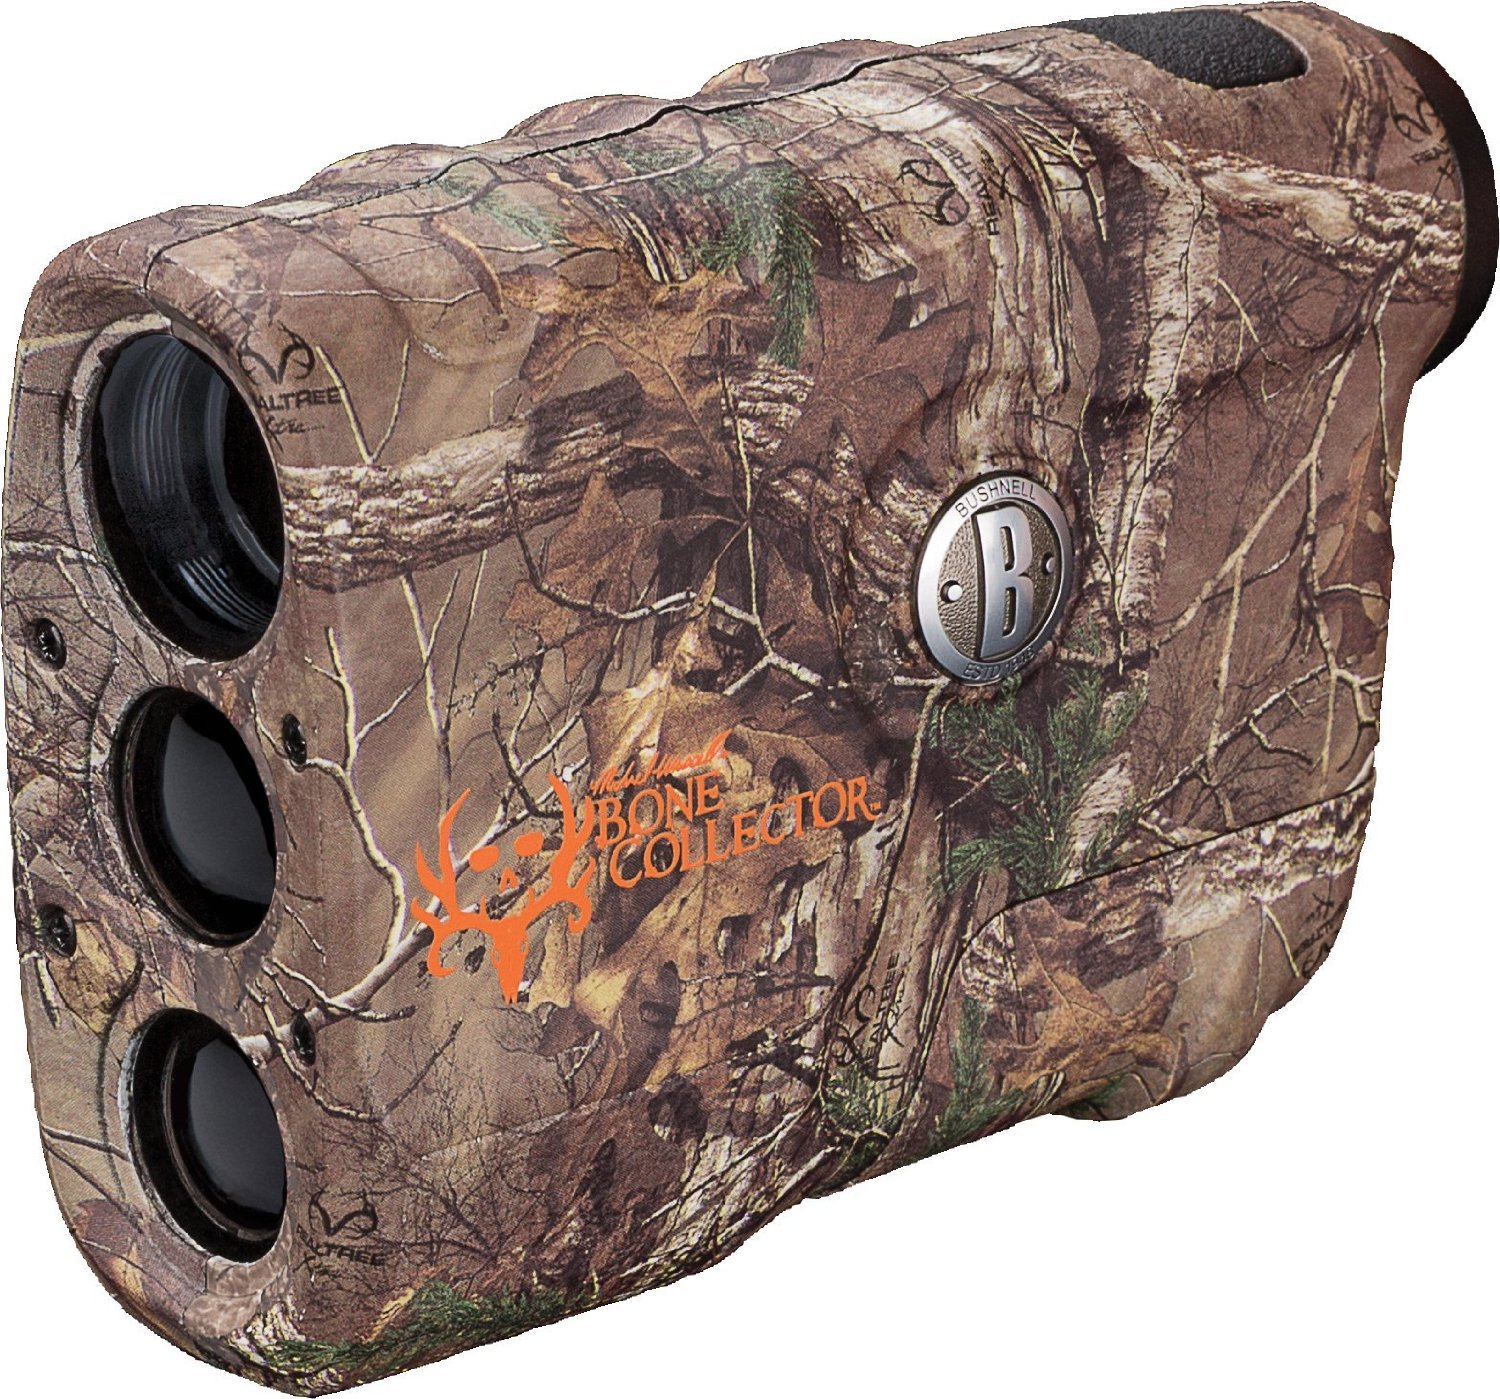 Bushnell Michael Waddell Bone Collector Edition